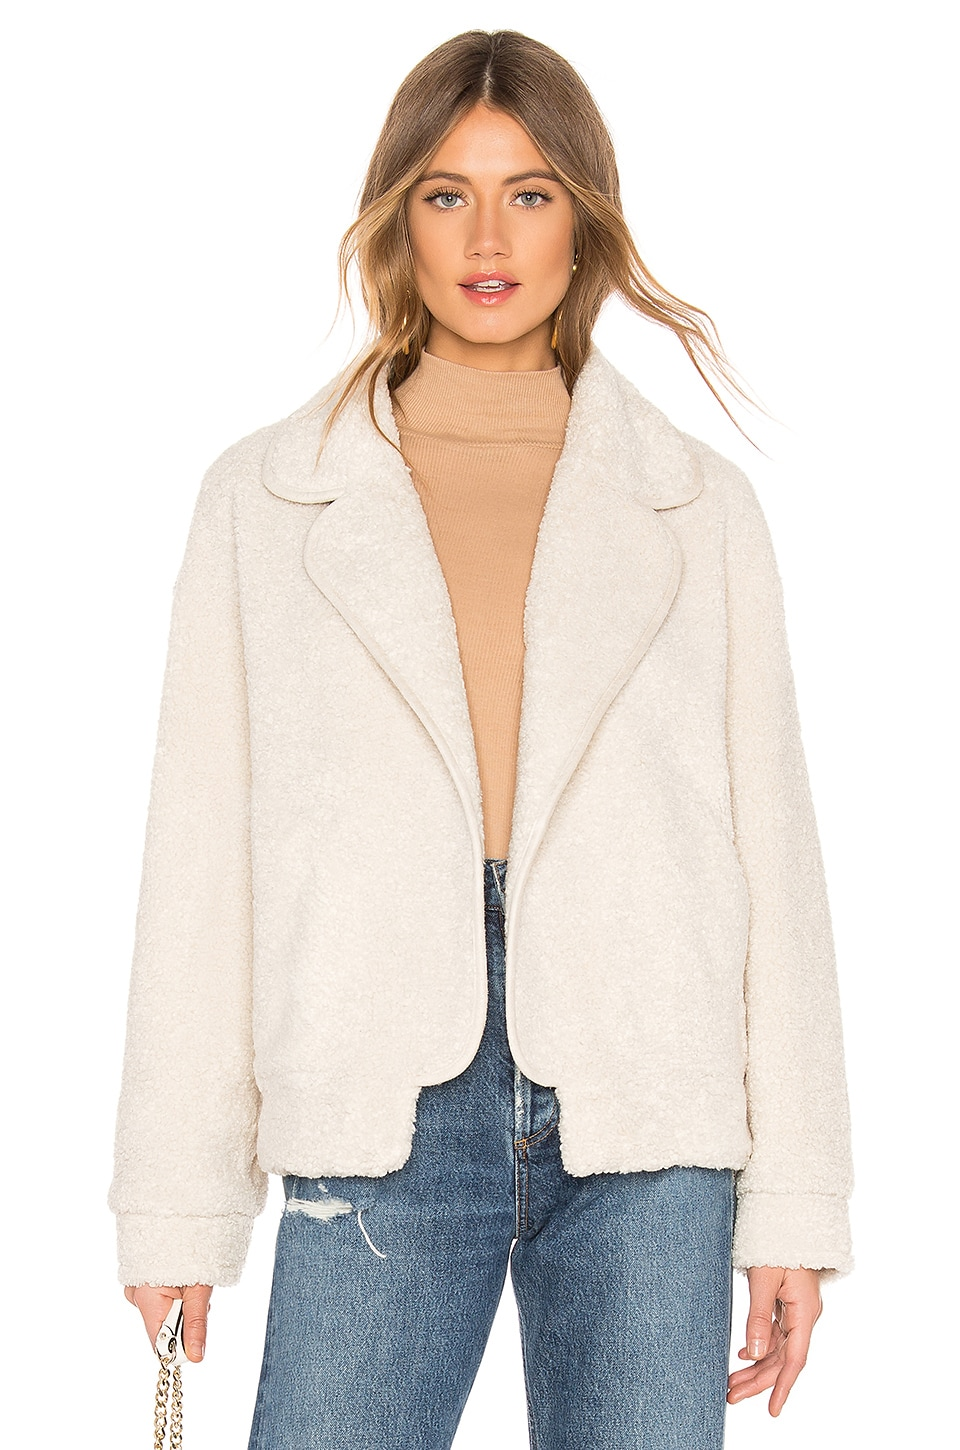 MAJORELLE Trayce Jacket in Cream